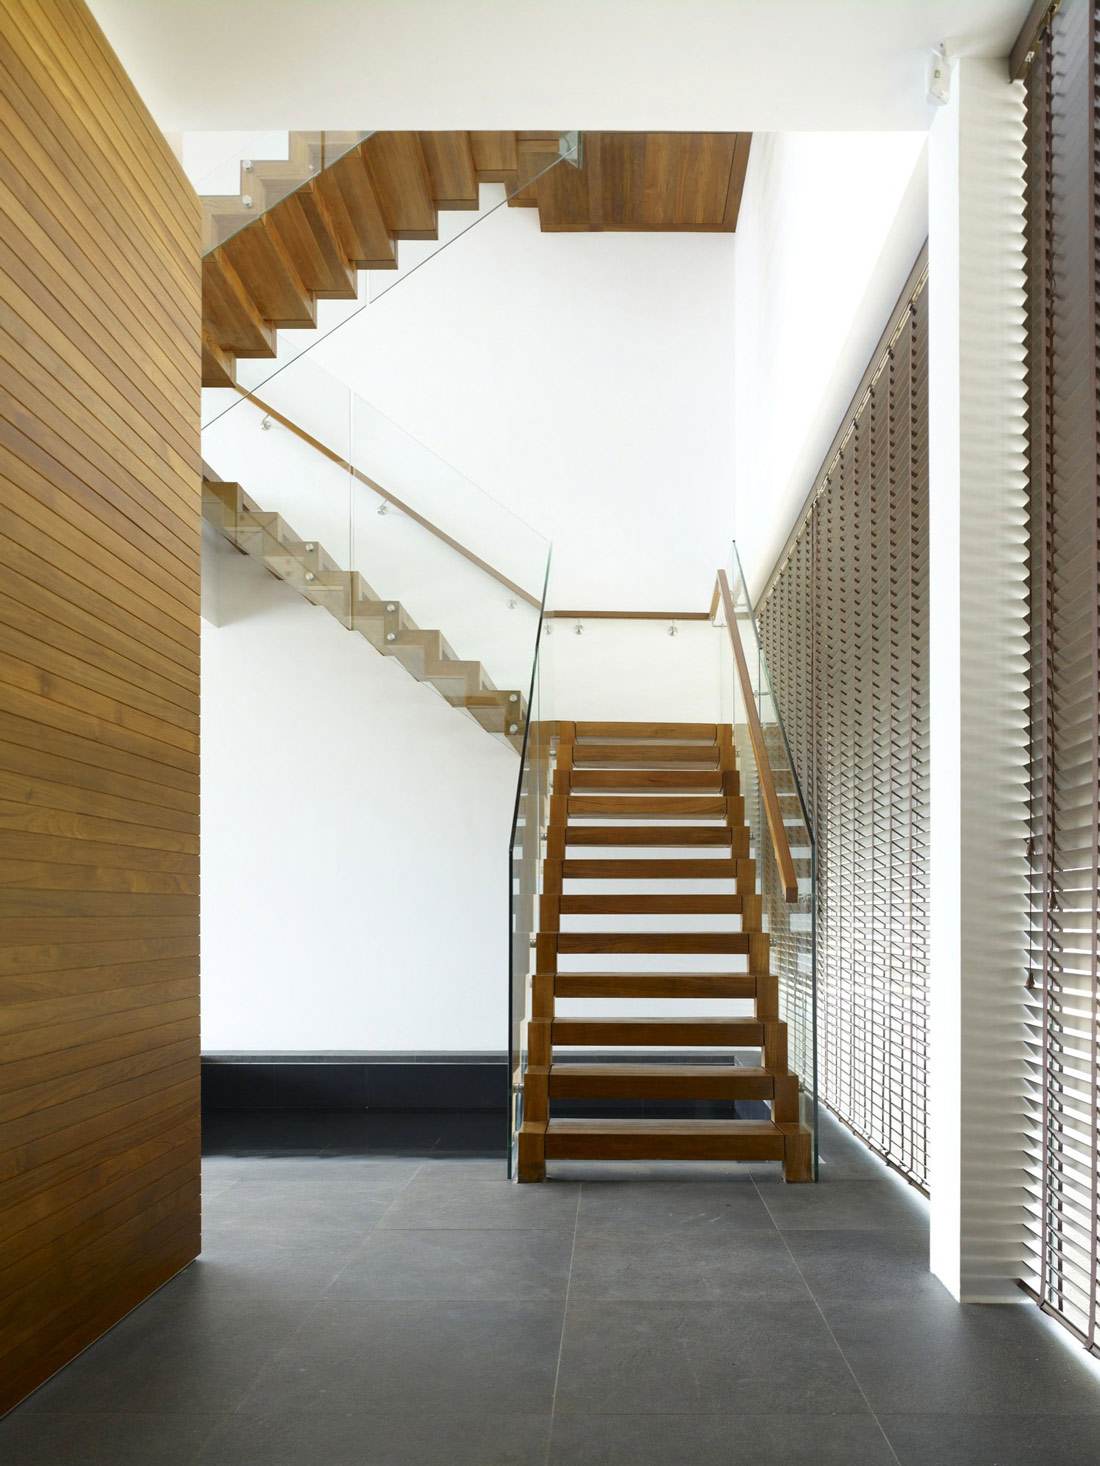 Stairs Minimalist Home In Singaporea6fb0f